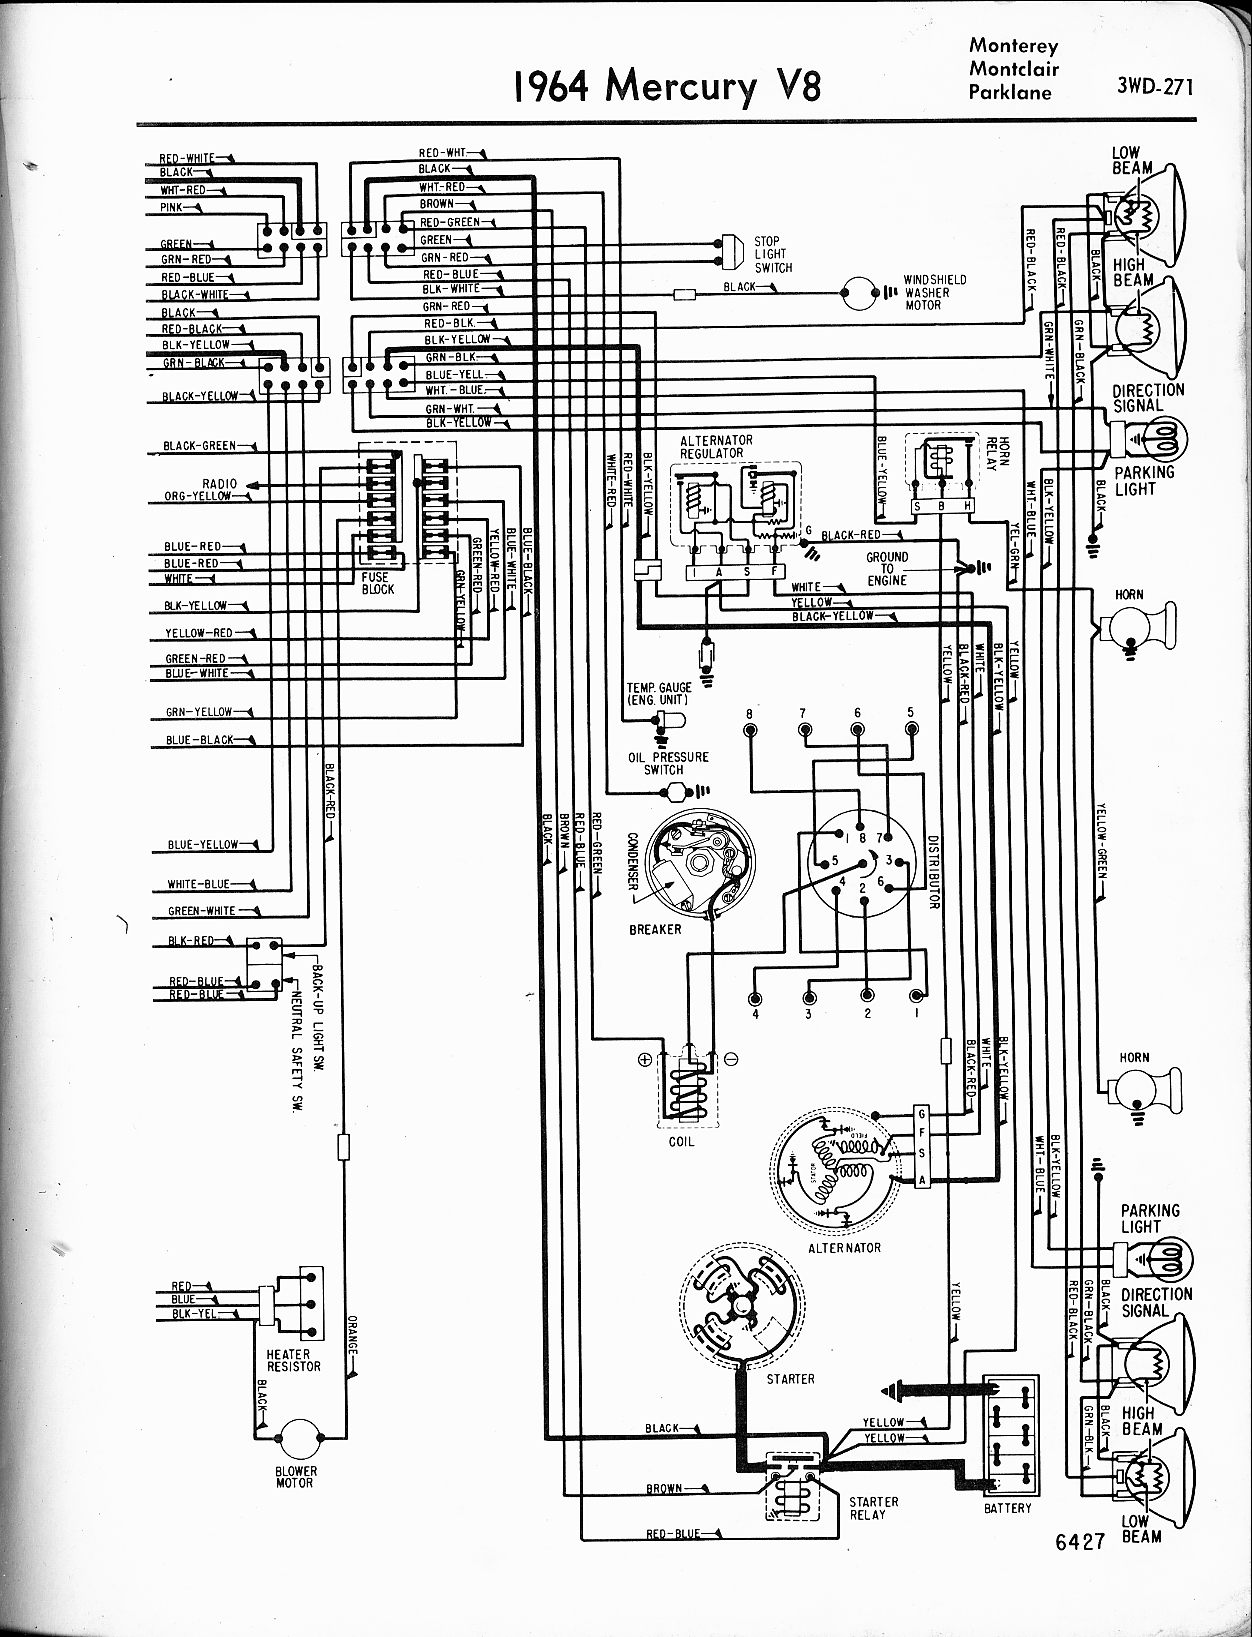 MWire5765 271 mercury wiring diagrams the old car manual project 2004 mercury monterey fuse box diagram at gsmx.co